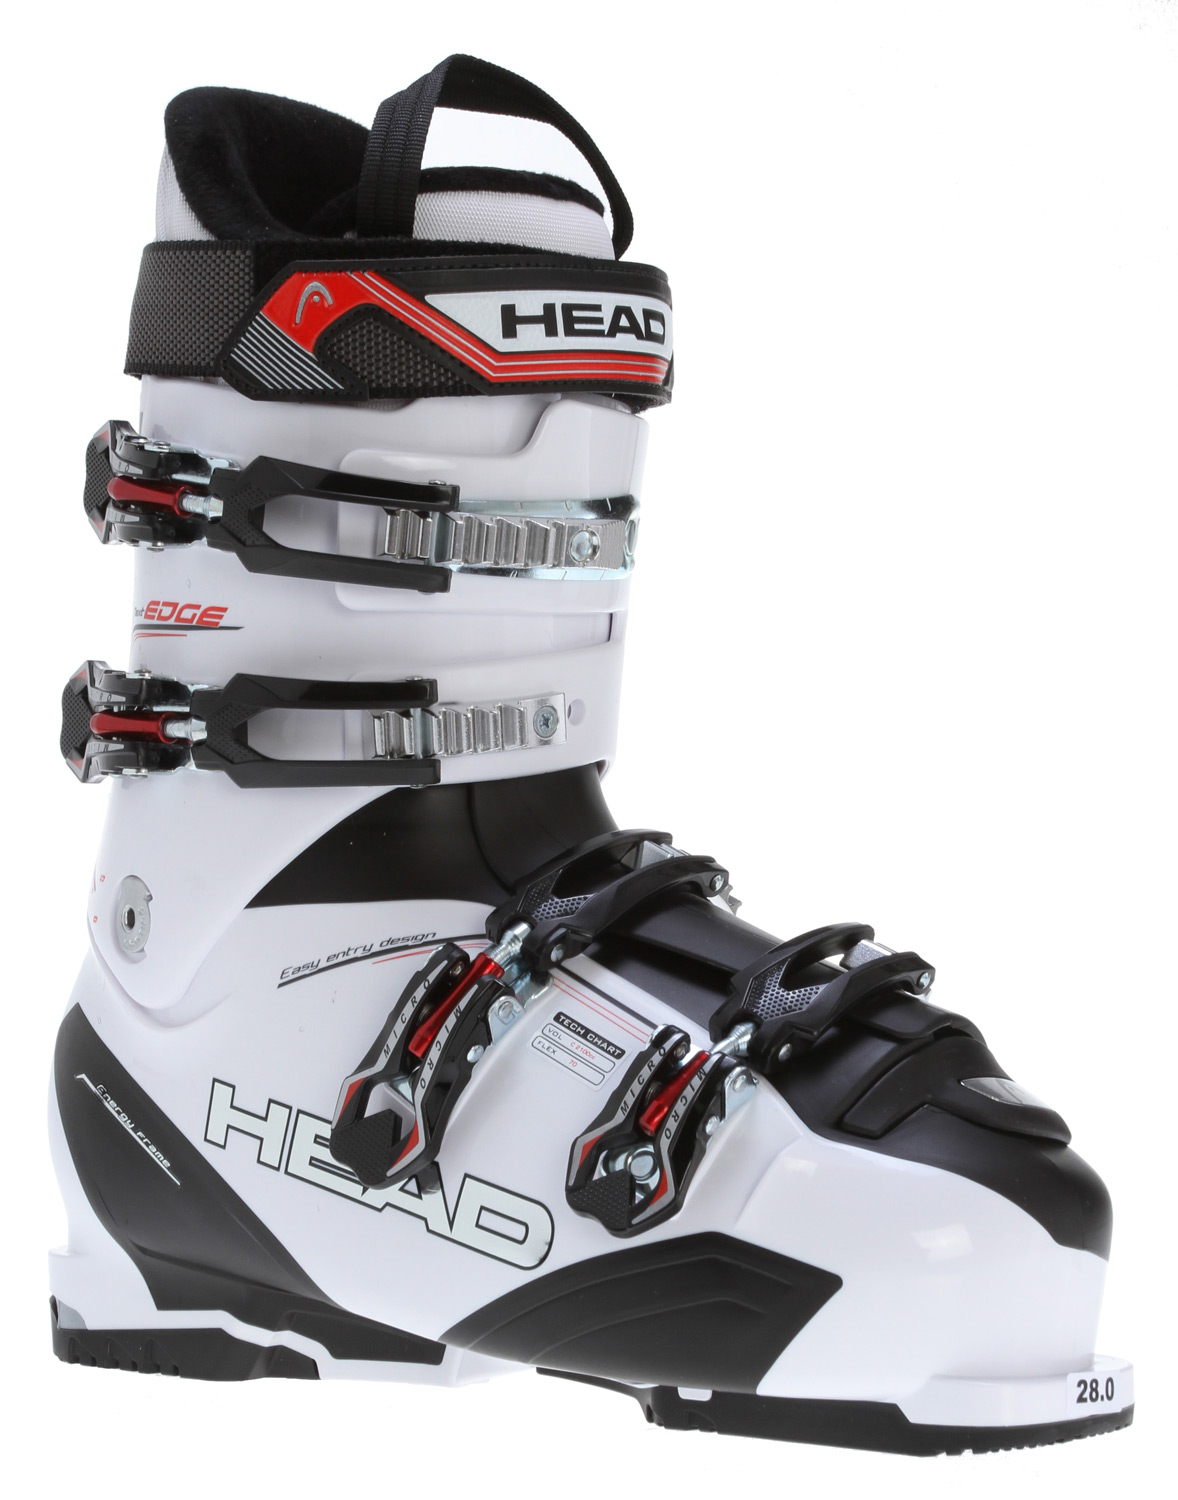 Ski Key Features of the Head Next Edge 70 Ski Boots White/Black: Level: Intermediate SL Shell Comfort Liner Sport Frame Footbed 35mm Velcro Strap Prepared for Heating System 4 Micro Adjustable Plastic Buckles 1 Super Macro Ratchet Tri-inj Energy Frame Easy Entry shell Design Double Canting Soft Walk Heel Flex Index: 70 - $173.95